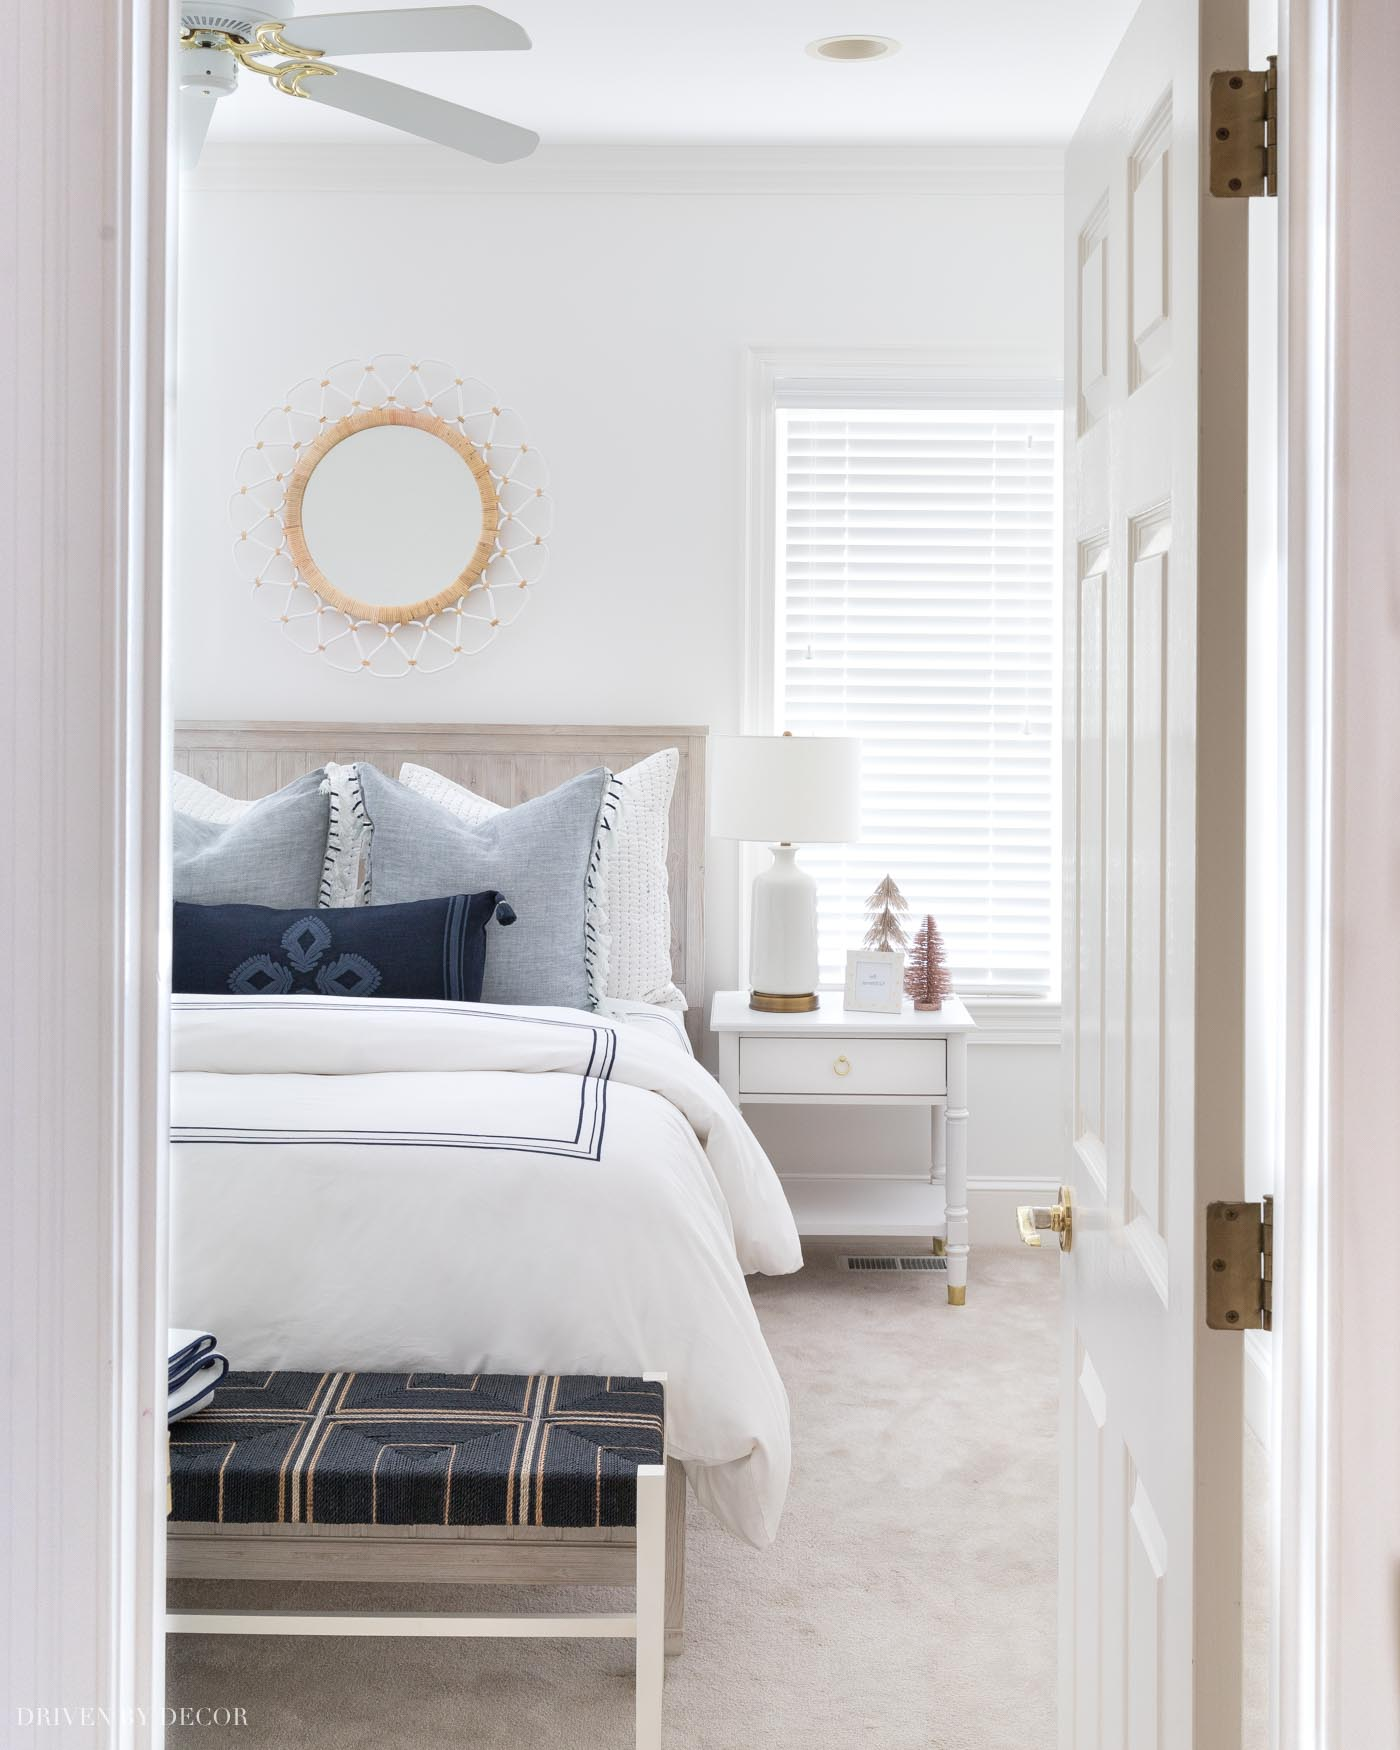 Love this fresh, clean white paint color - Benjamin Moore Simply White